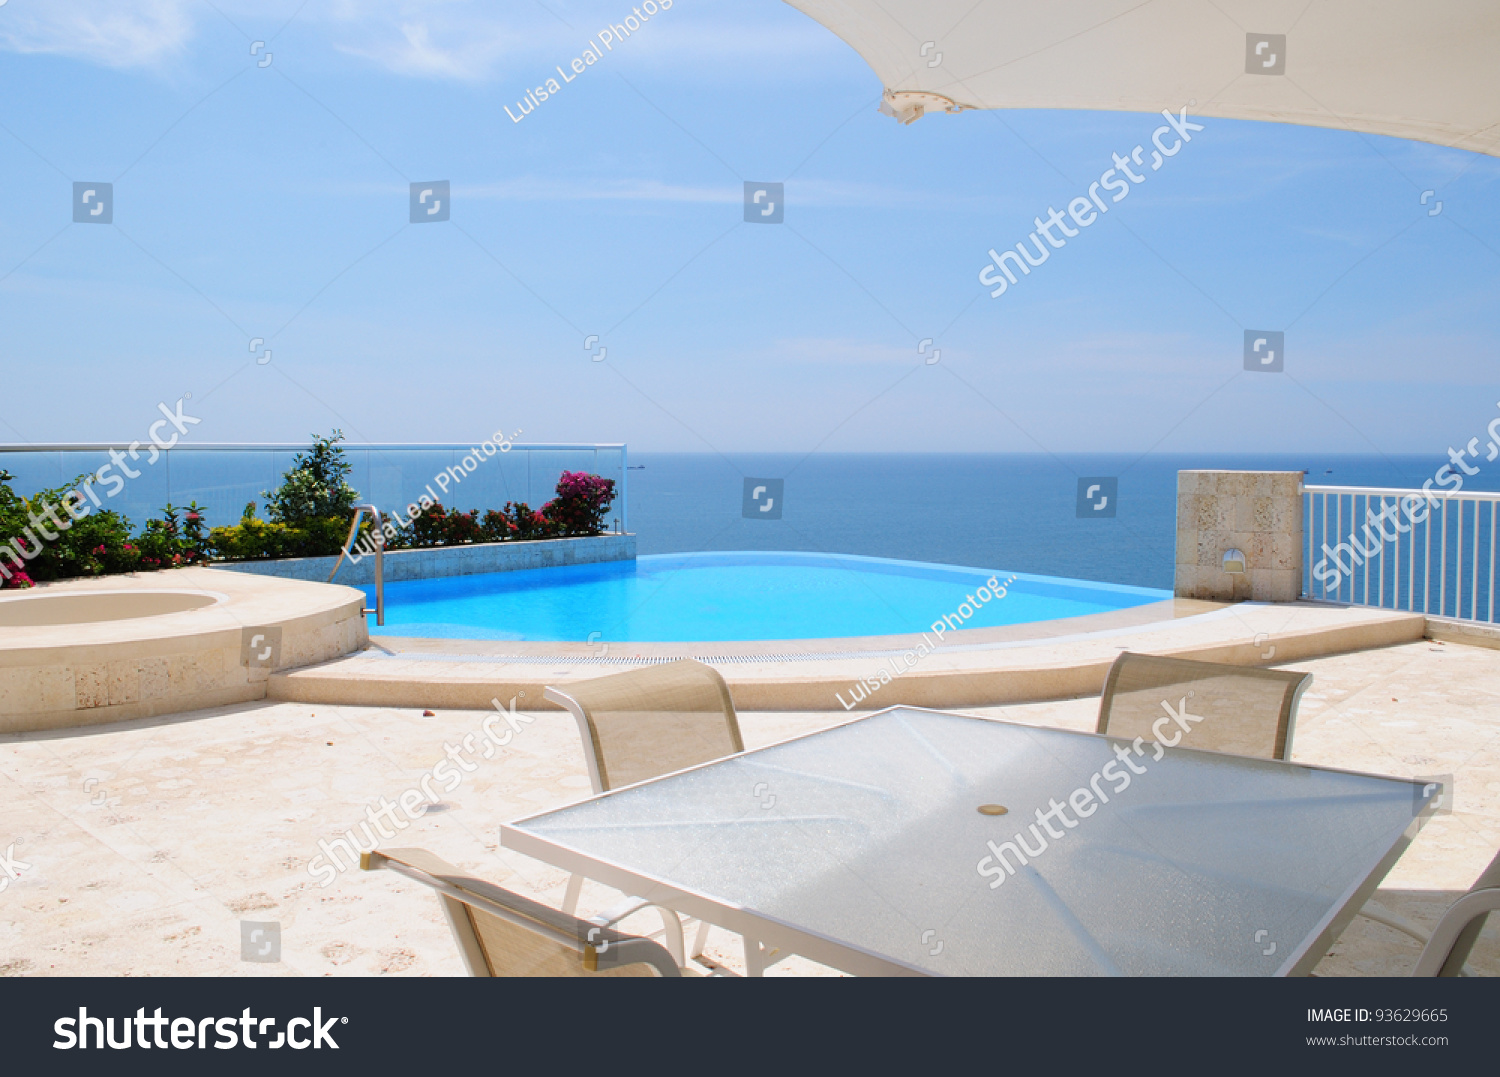 swimming pool with outdoor jacuzzi stock photo 93629665. Black Bedroom Furniture Sets. Home Design Ideas